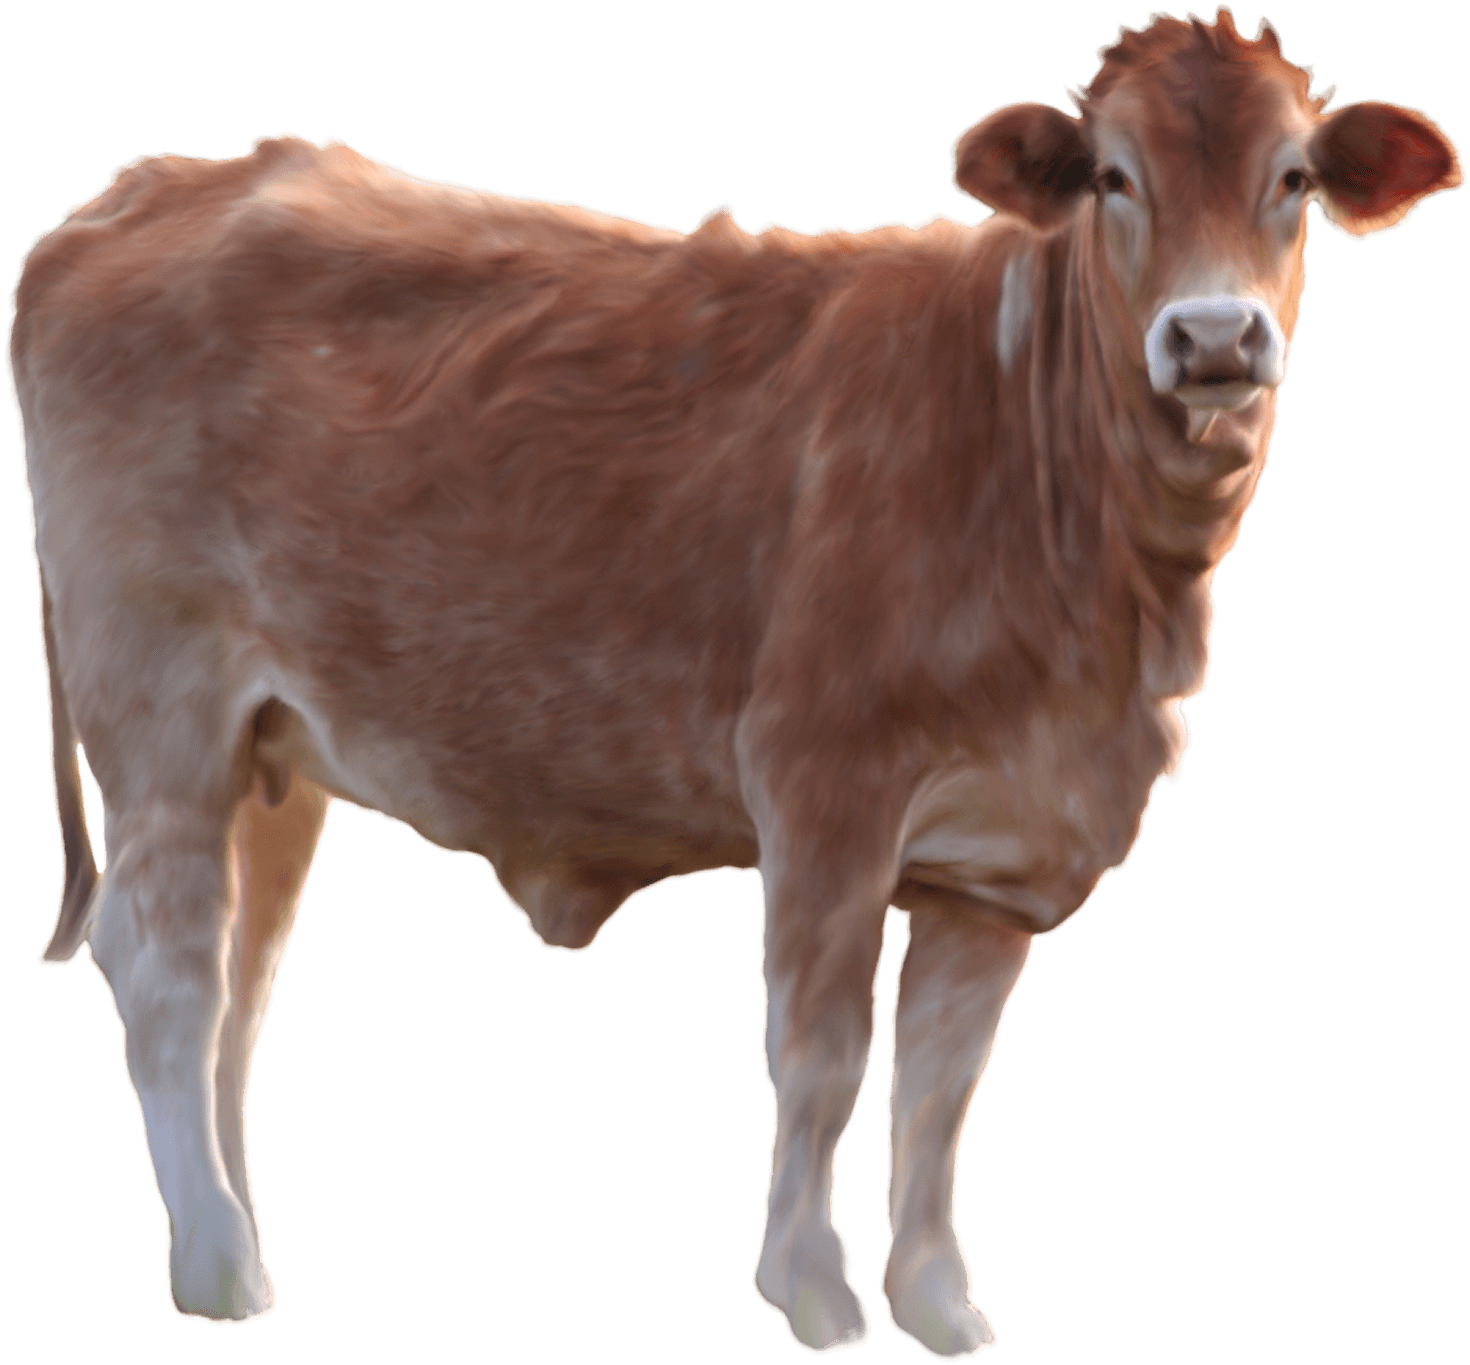 Cow Png Image PNG Image - Baby Cow PNG HD